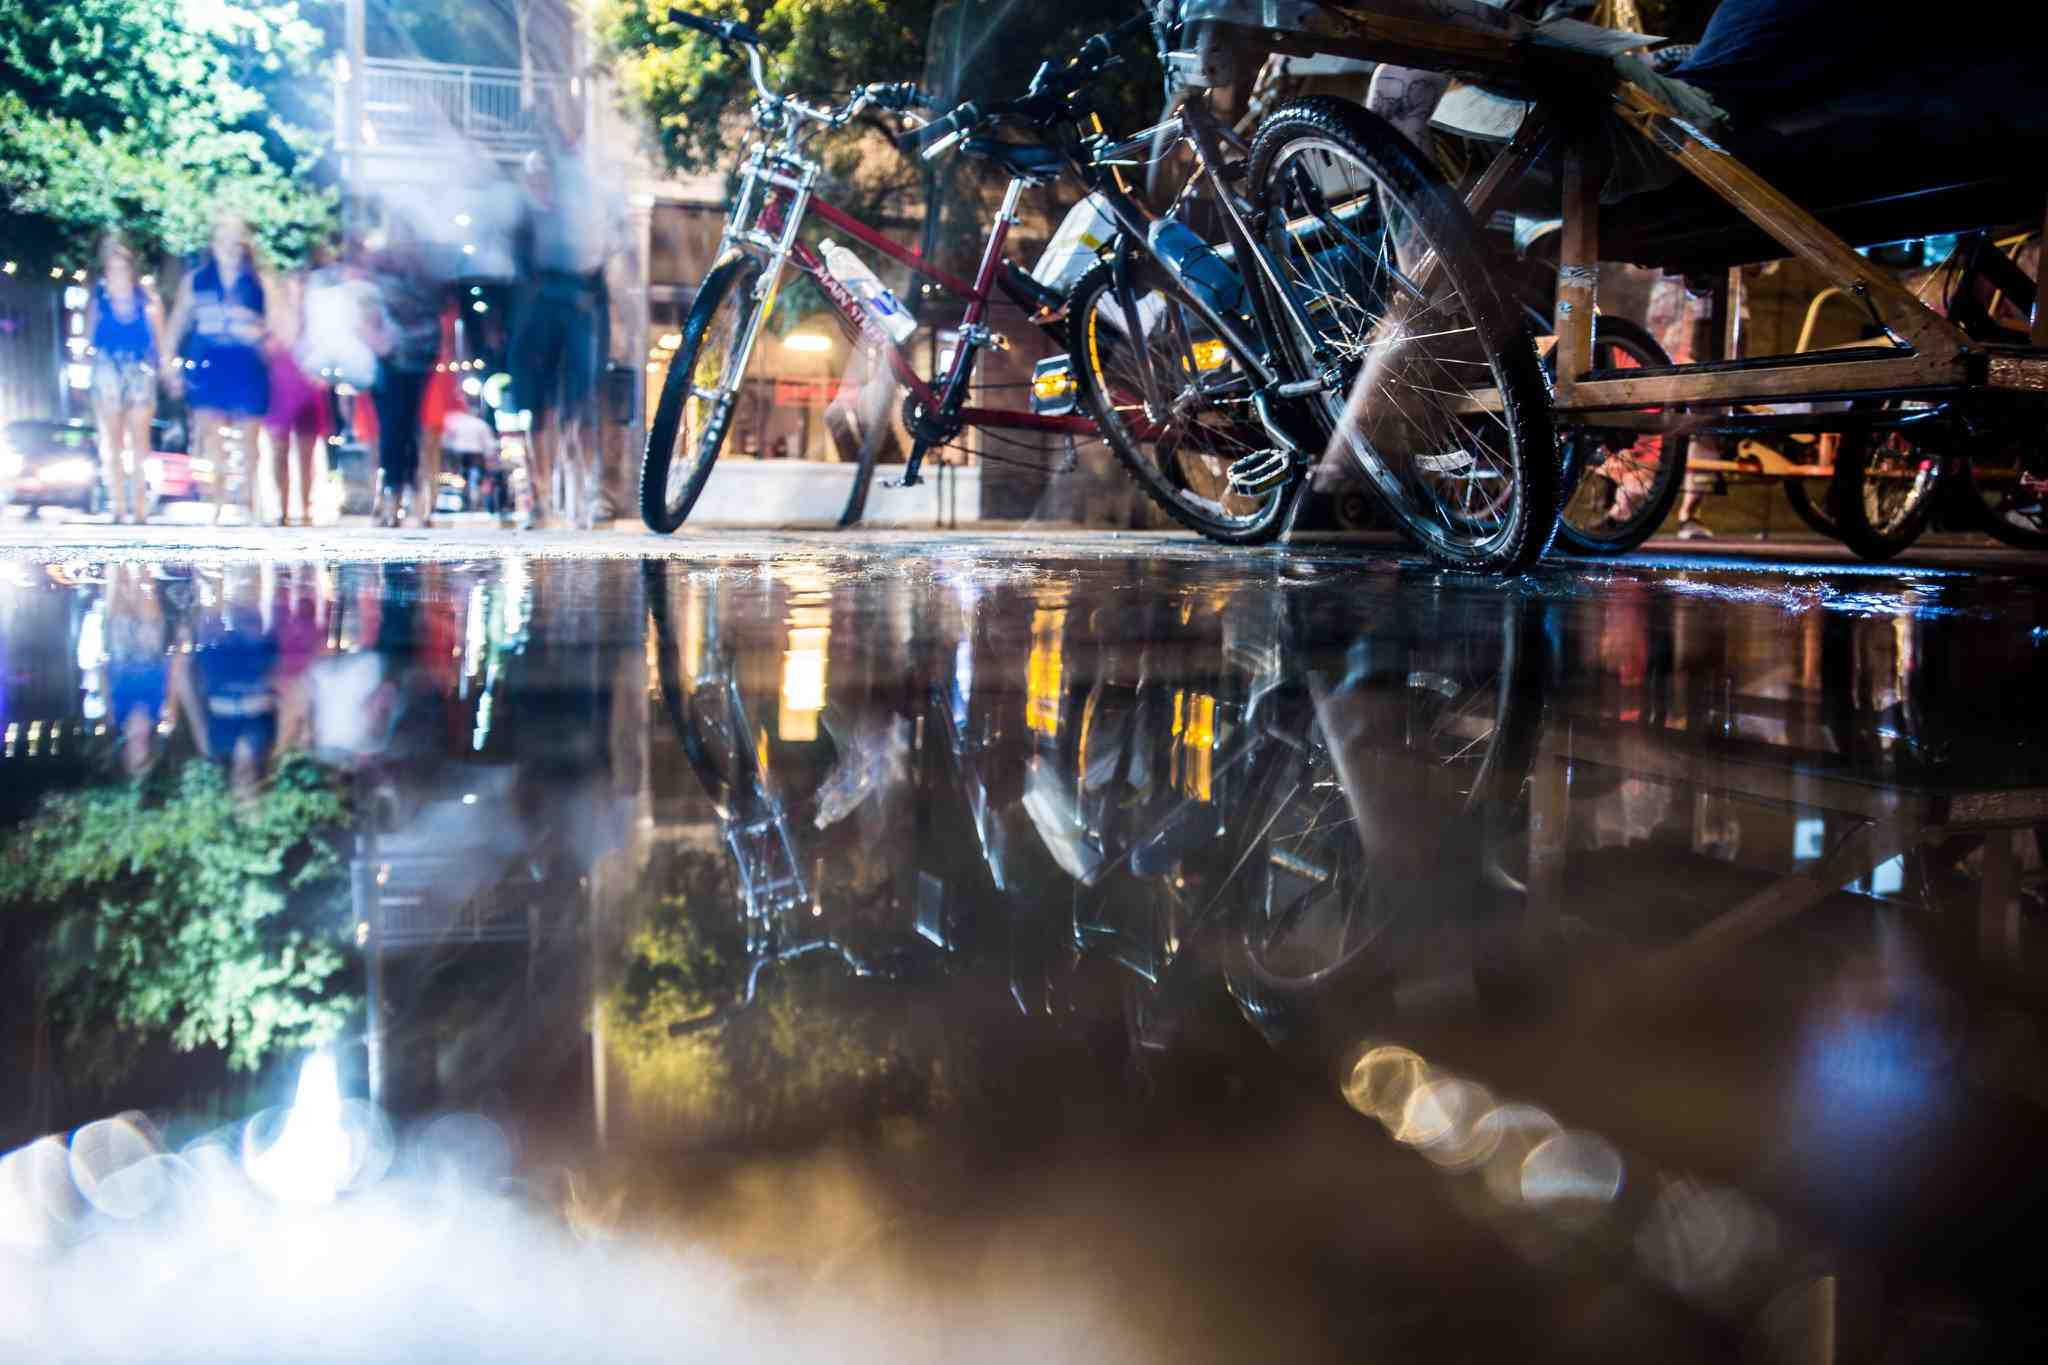 Bicycles on Road With Puddle